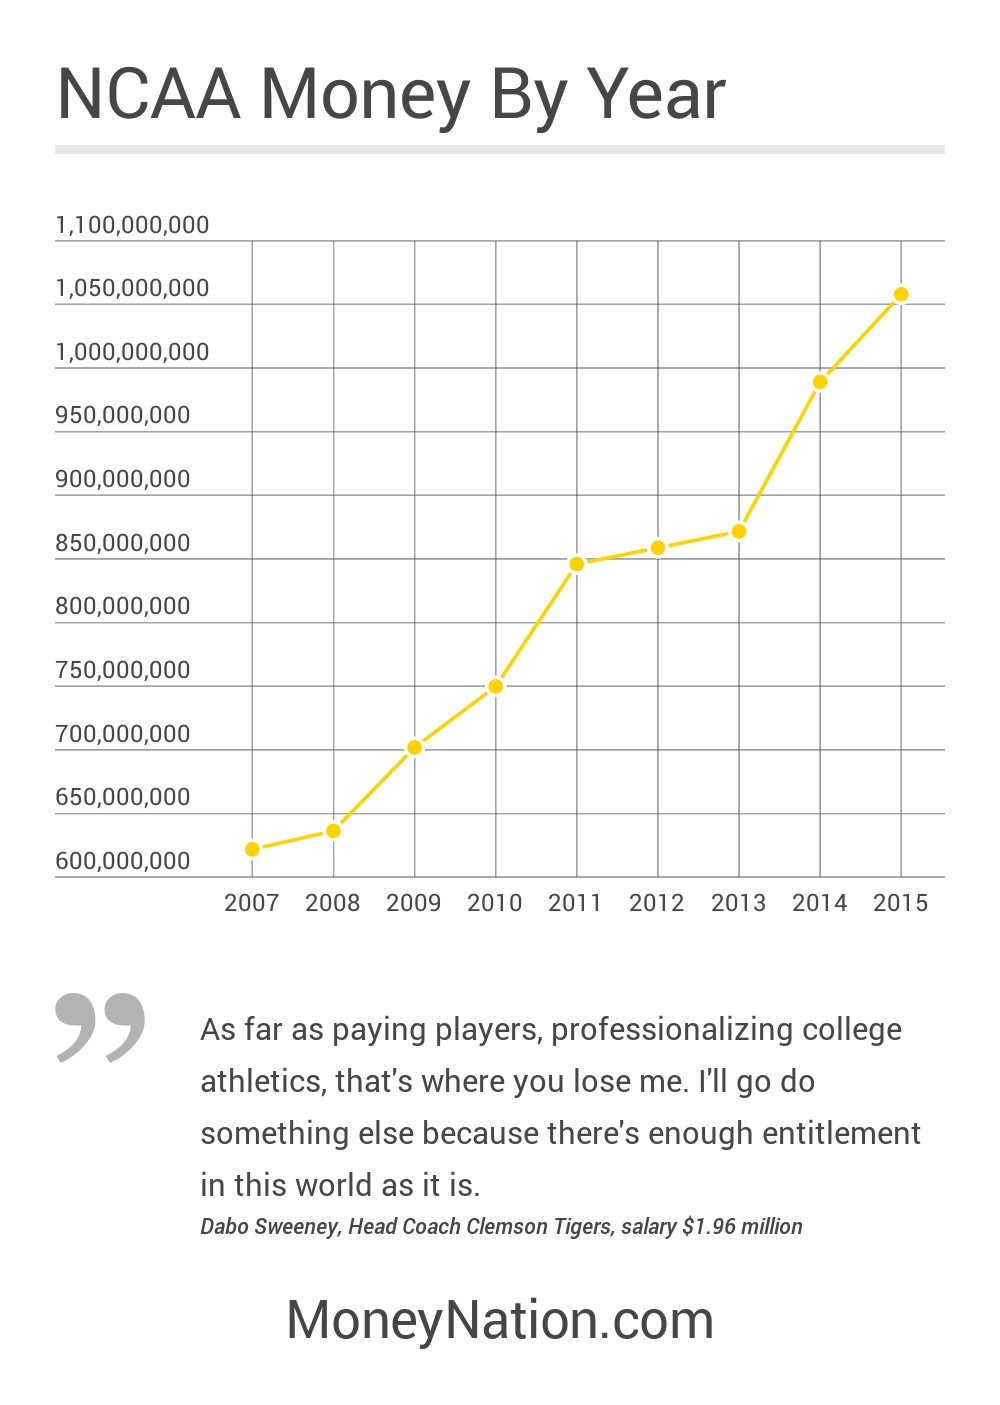 NCAA Money Made by Year